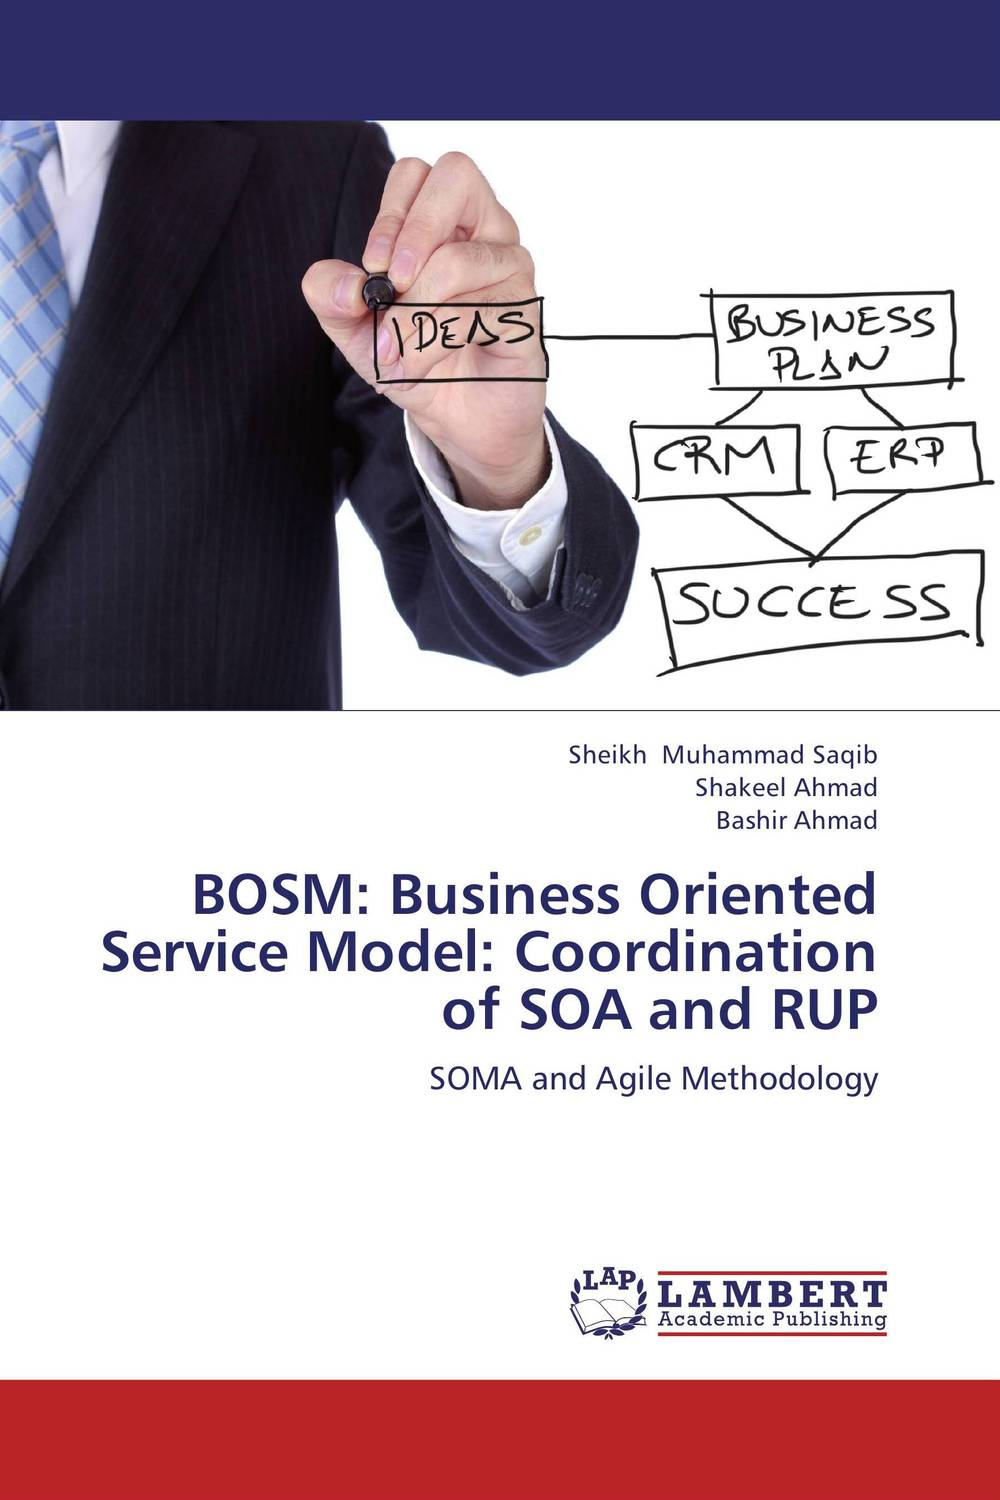 BOSM: Business Oriented Service Model: Coordination of SOA and RUP ноутбук acer aspire e5 532 c43n nx myver 017